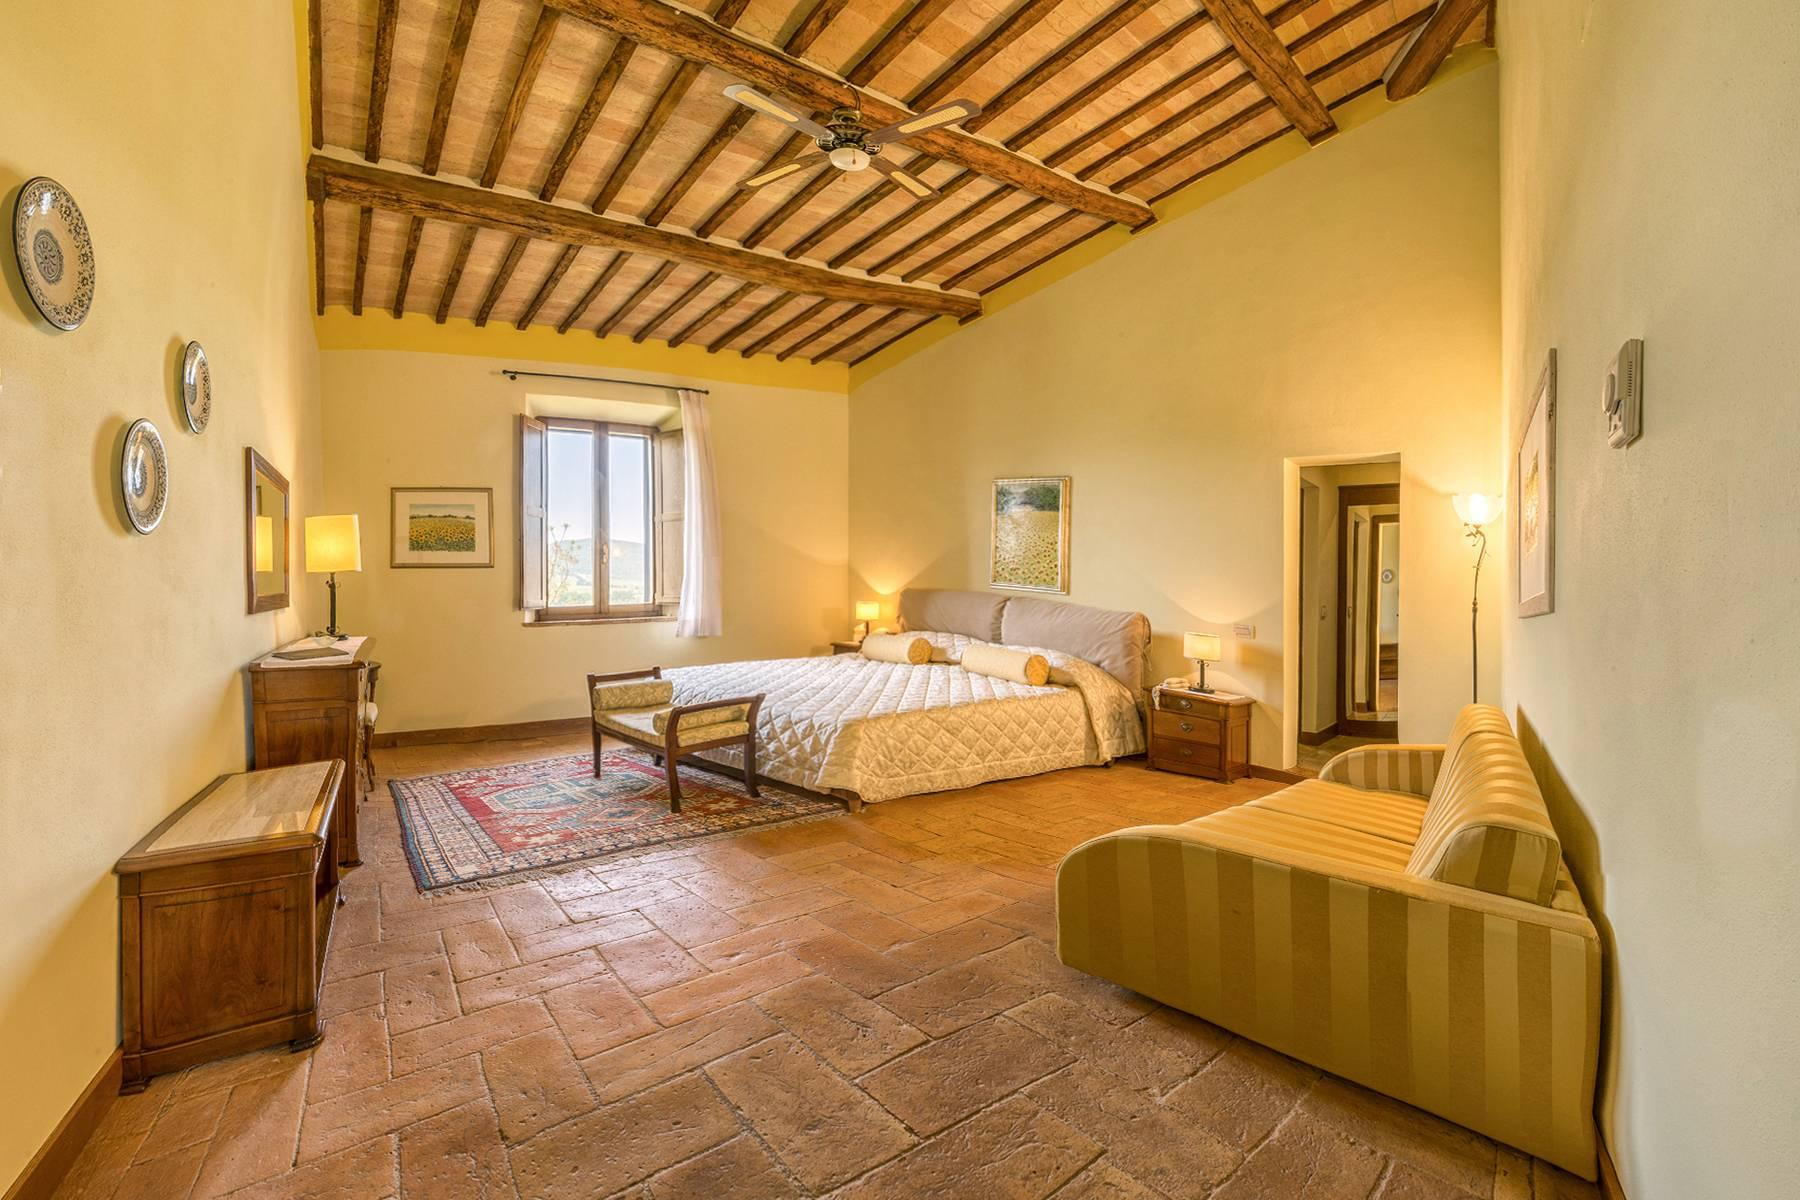 Exclusive property close to Siena - 30